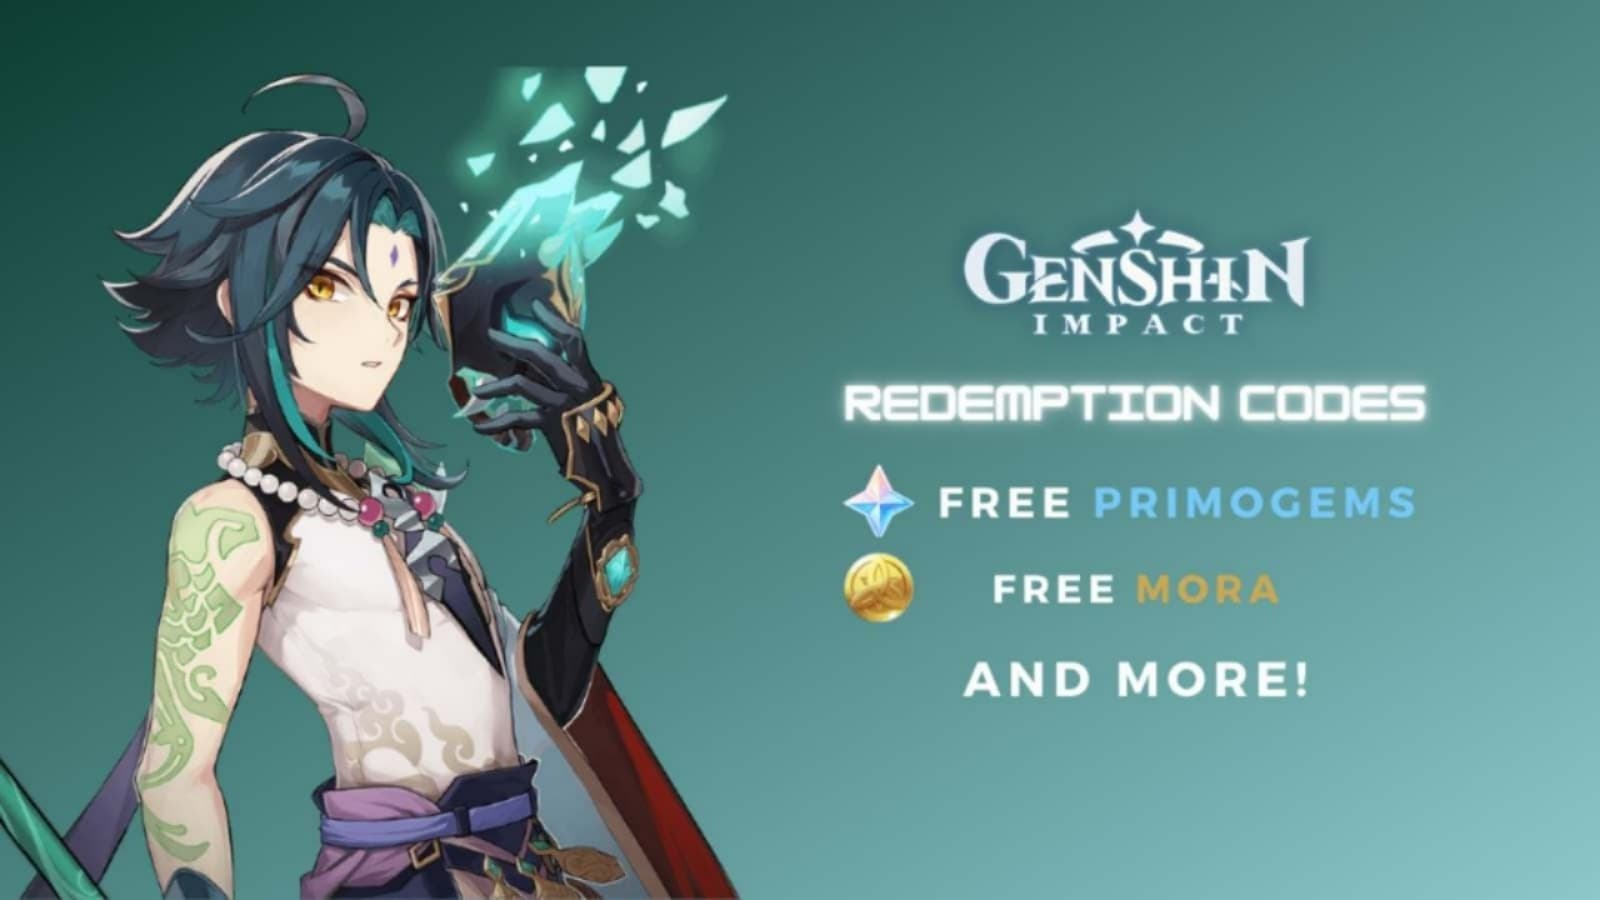 Genshin Impact Codes for August 2021: How to Redeem Free Primogems